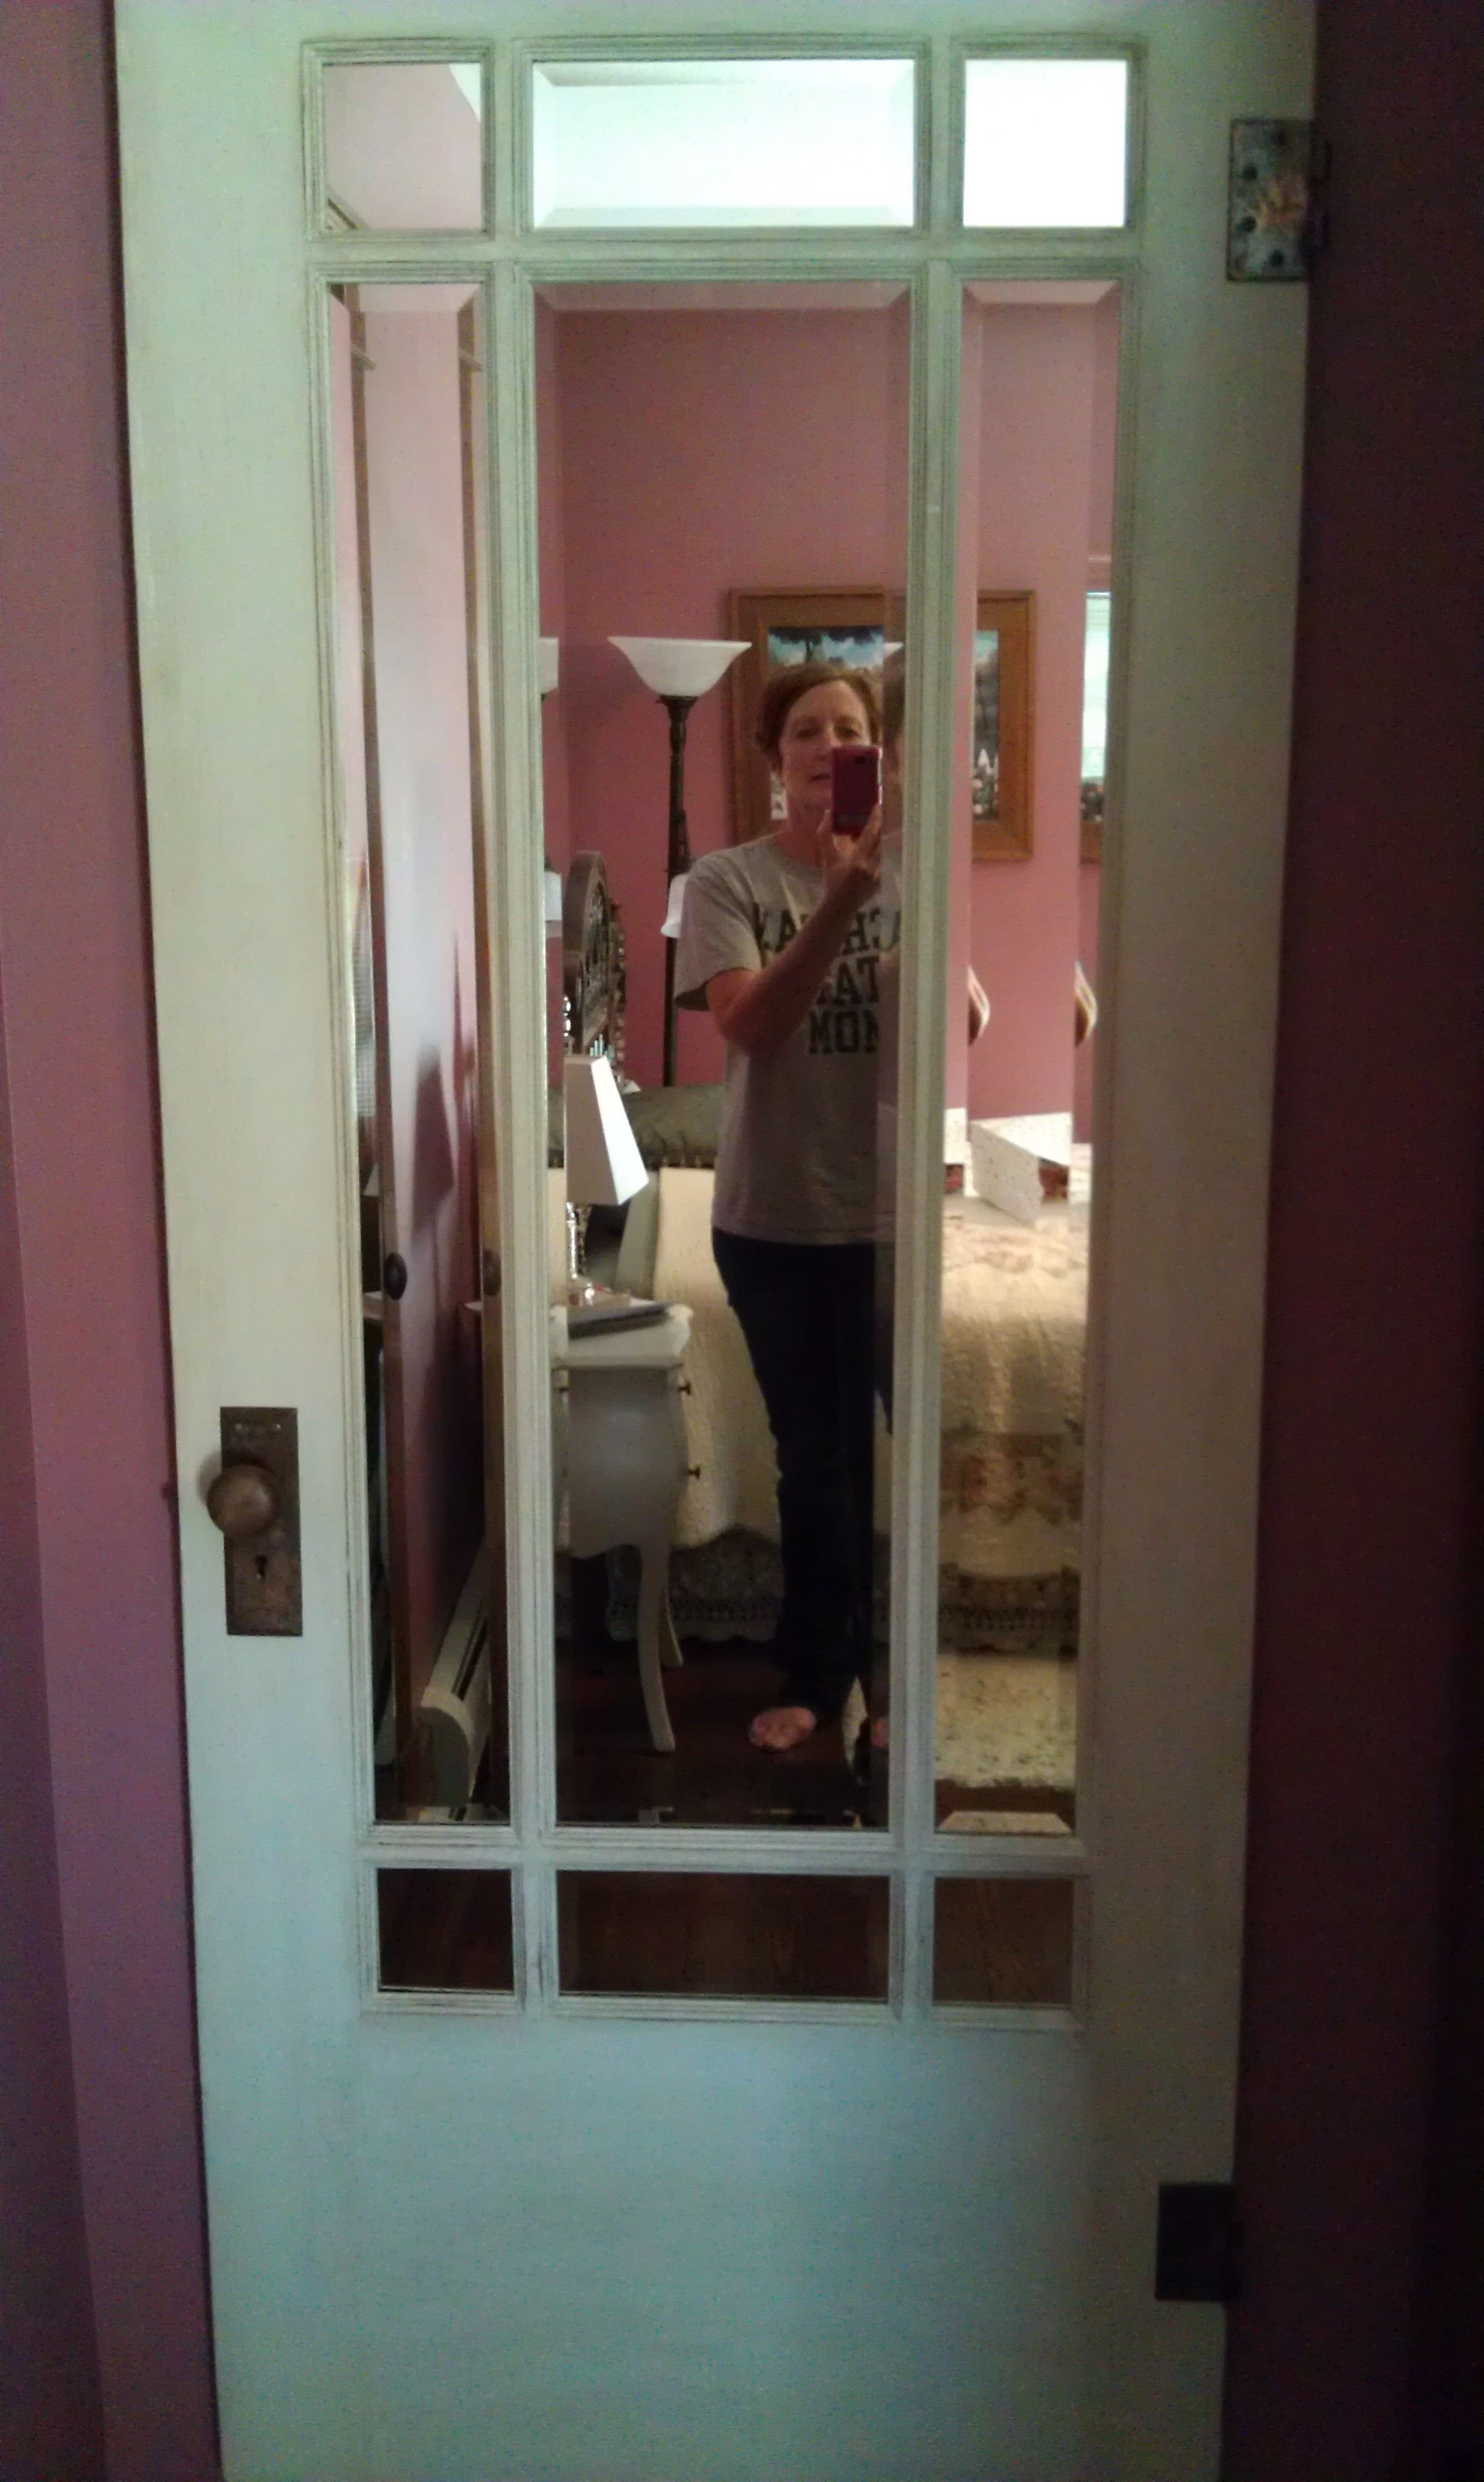 I Took An Old Door And Replaced The Glass Panels With Beveled Mirrors. It  Now Hangs On My Bedroom Wall As A Full Length Mirror.